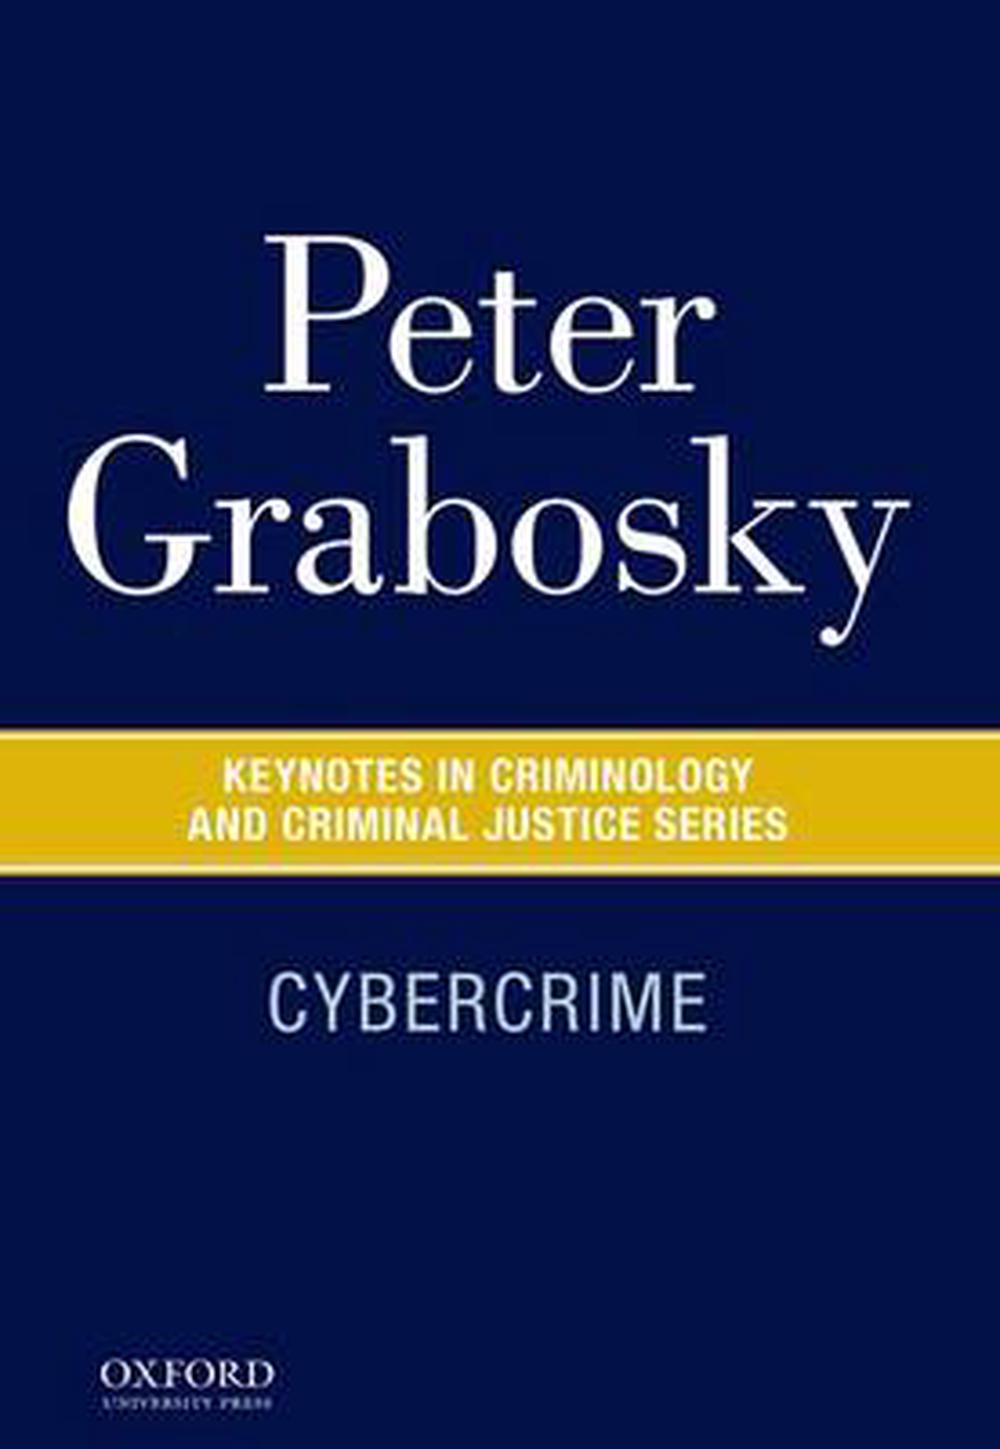 CybercrimeKeynotes Criminology Criminal Justice